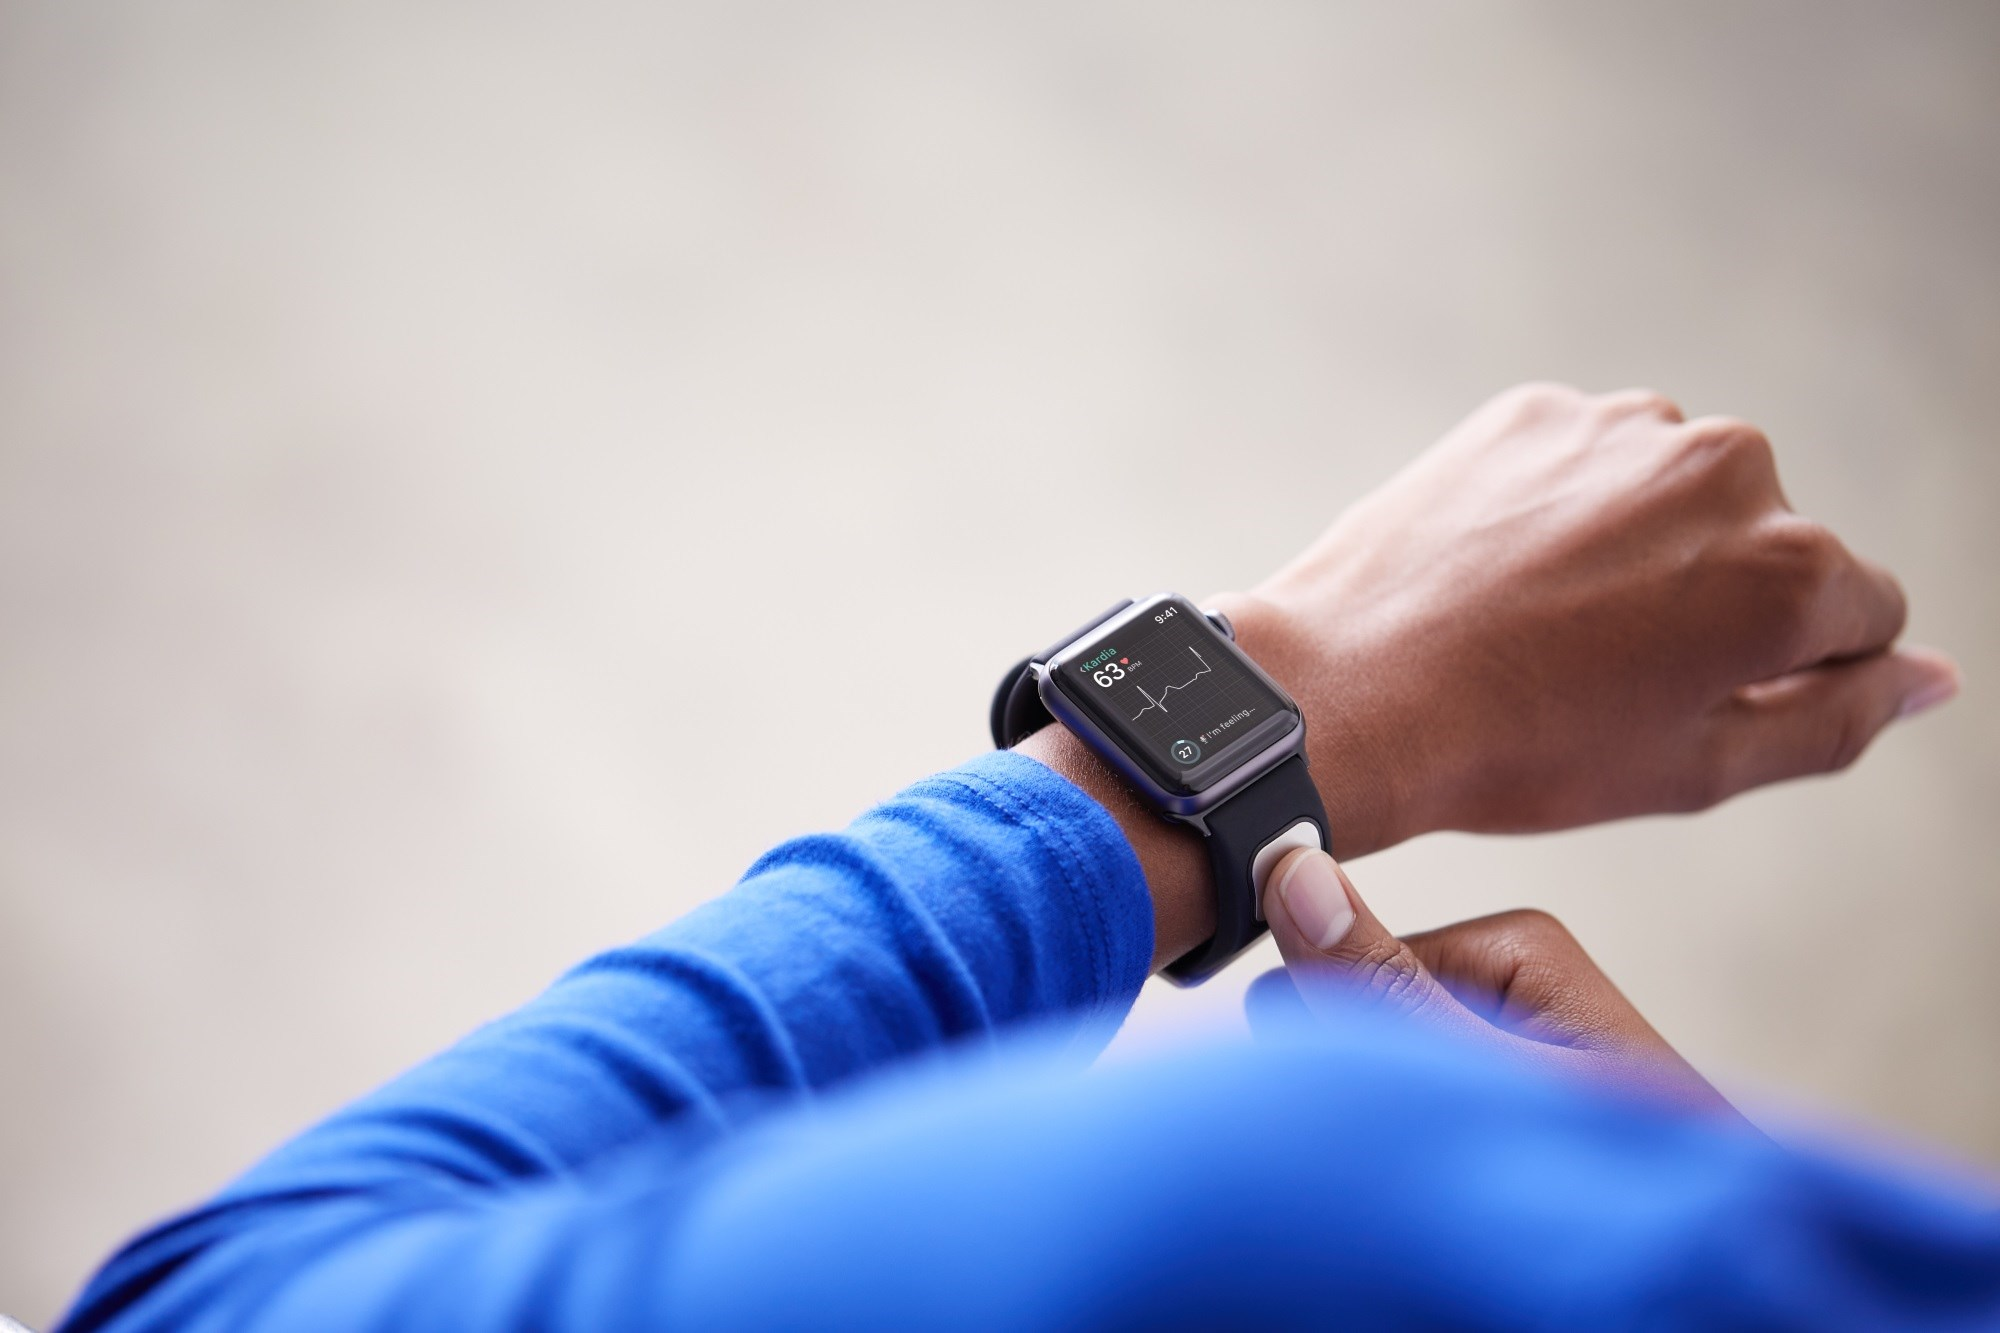 The KardiaBand allows patients to collect an electrocardiogram (ECG) reading using their Apple Watch. <i>Image Credit: AliveCor</i>